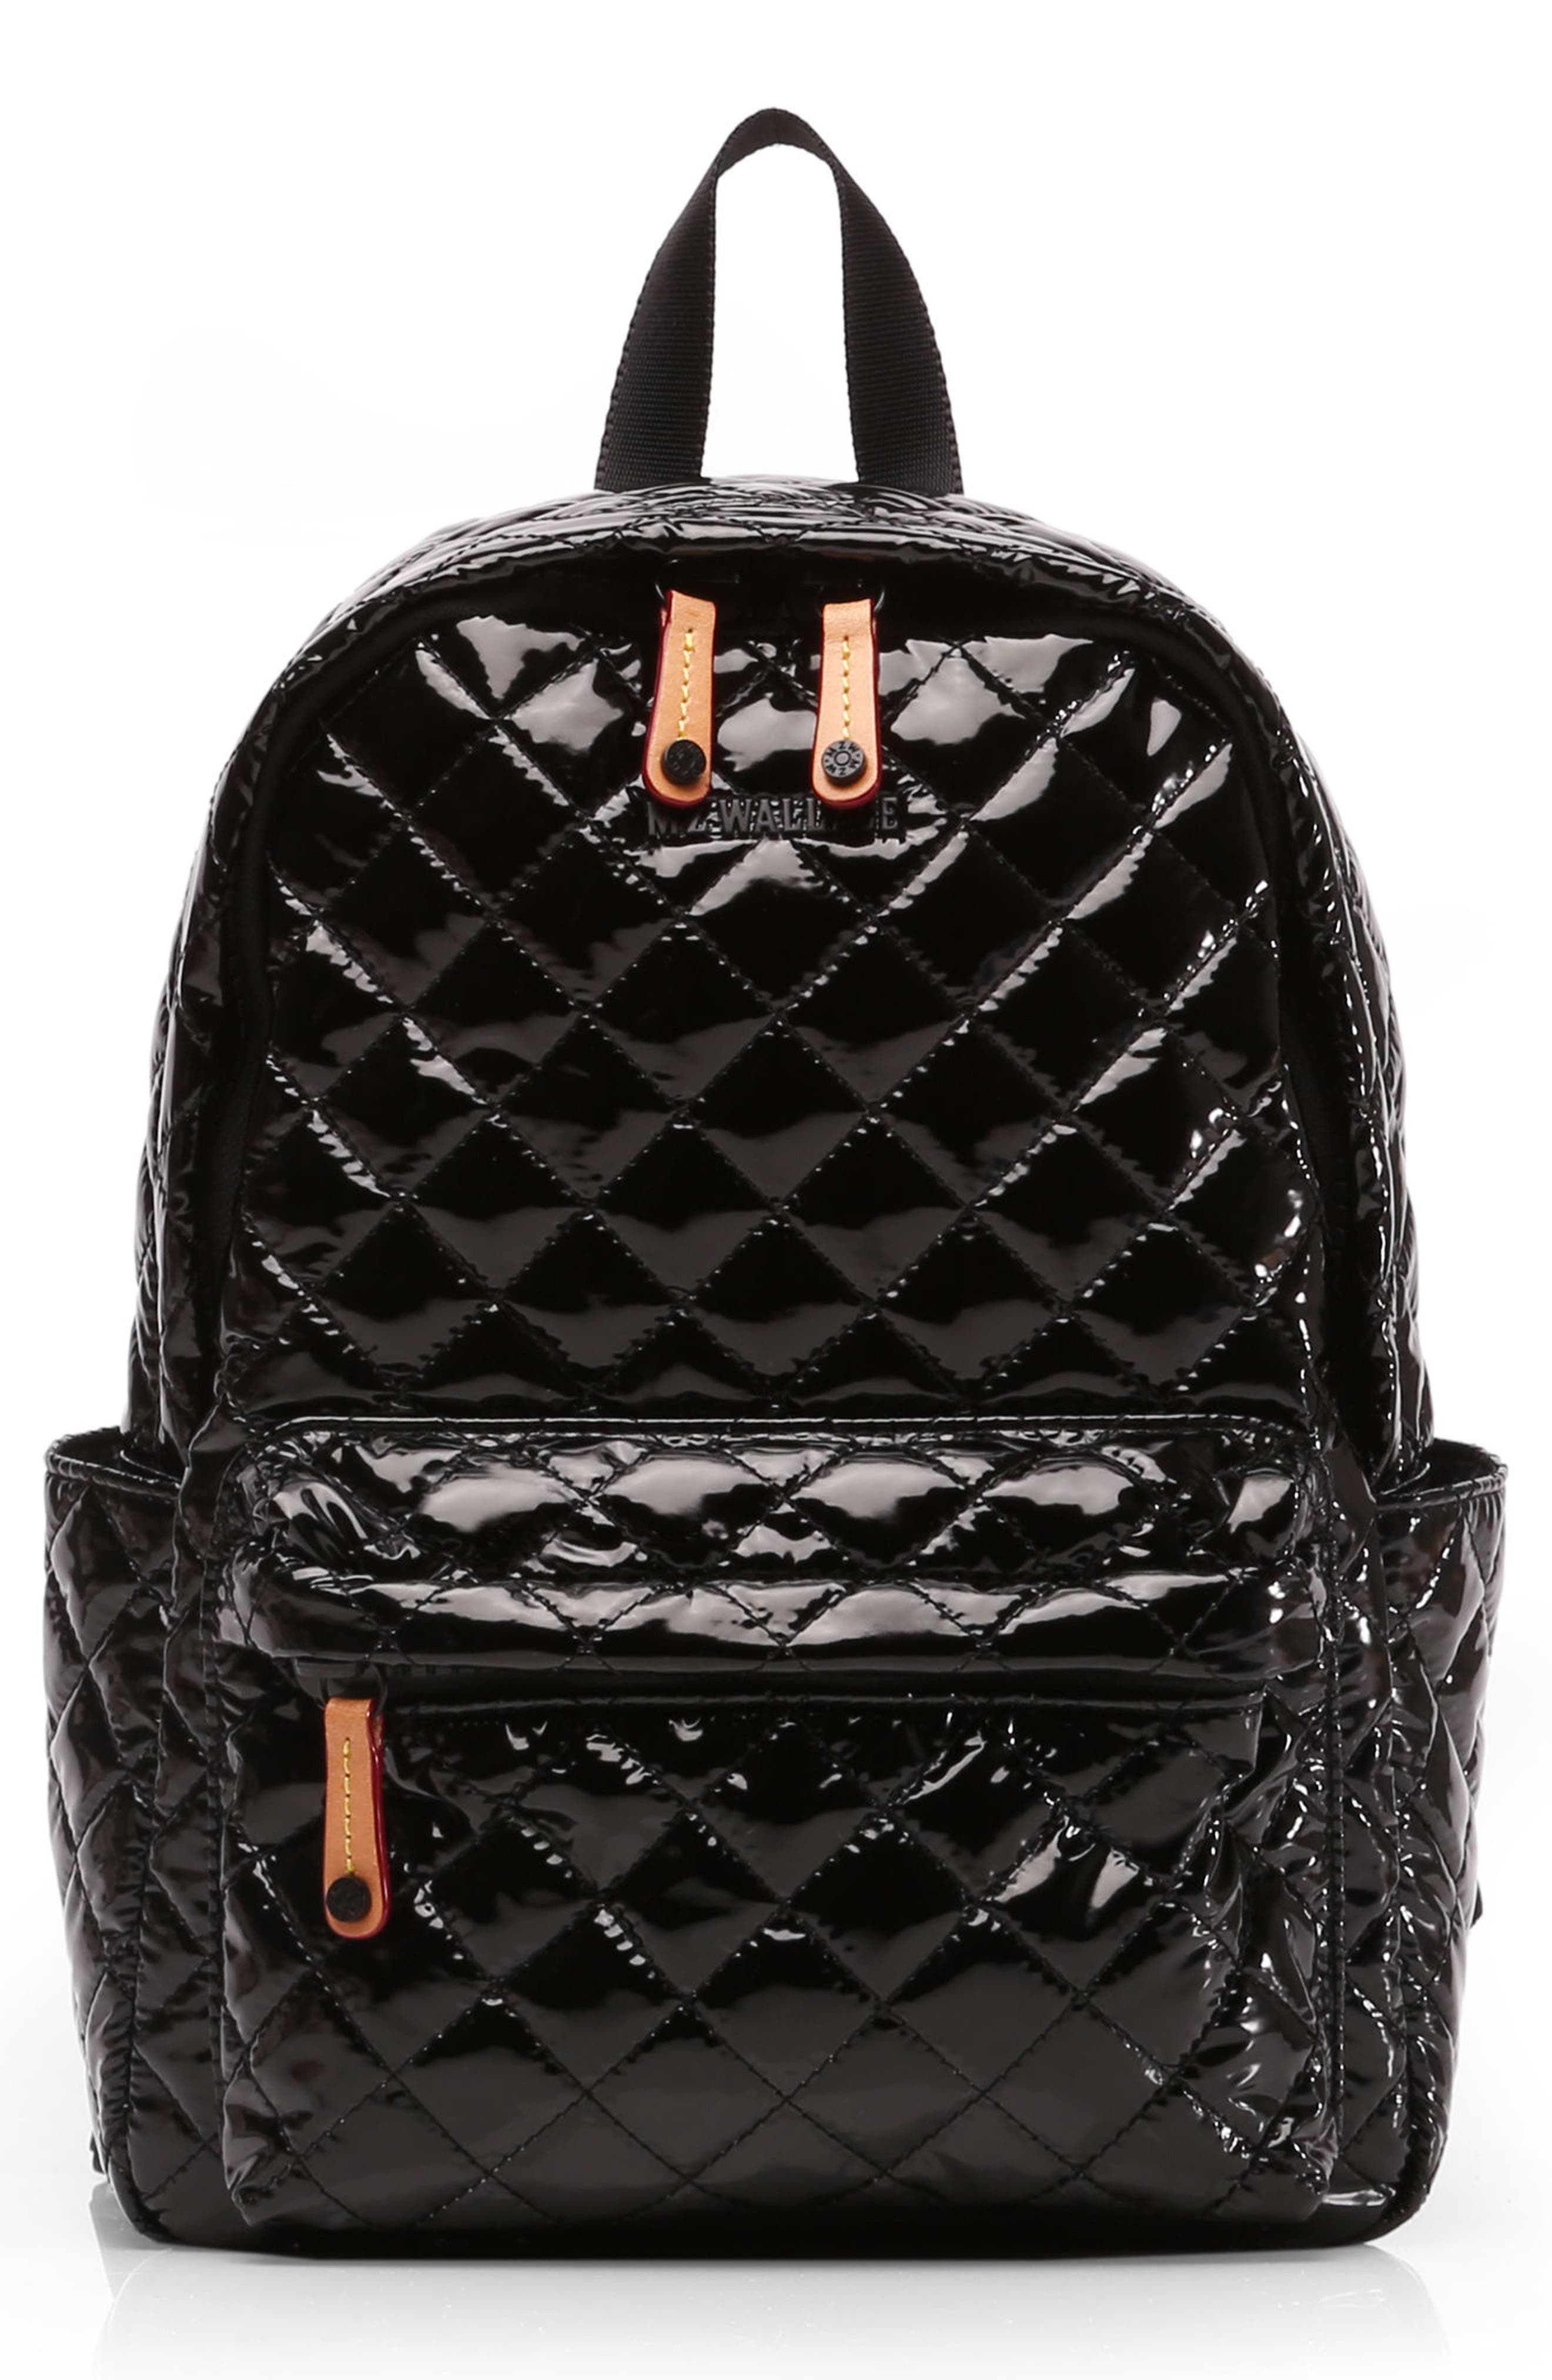 Small Metro Backpack,                             Main thumbnail 1, color,                             Black Lacquer